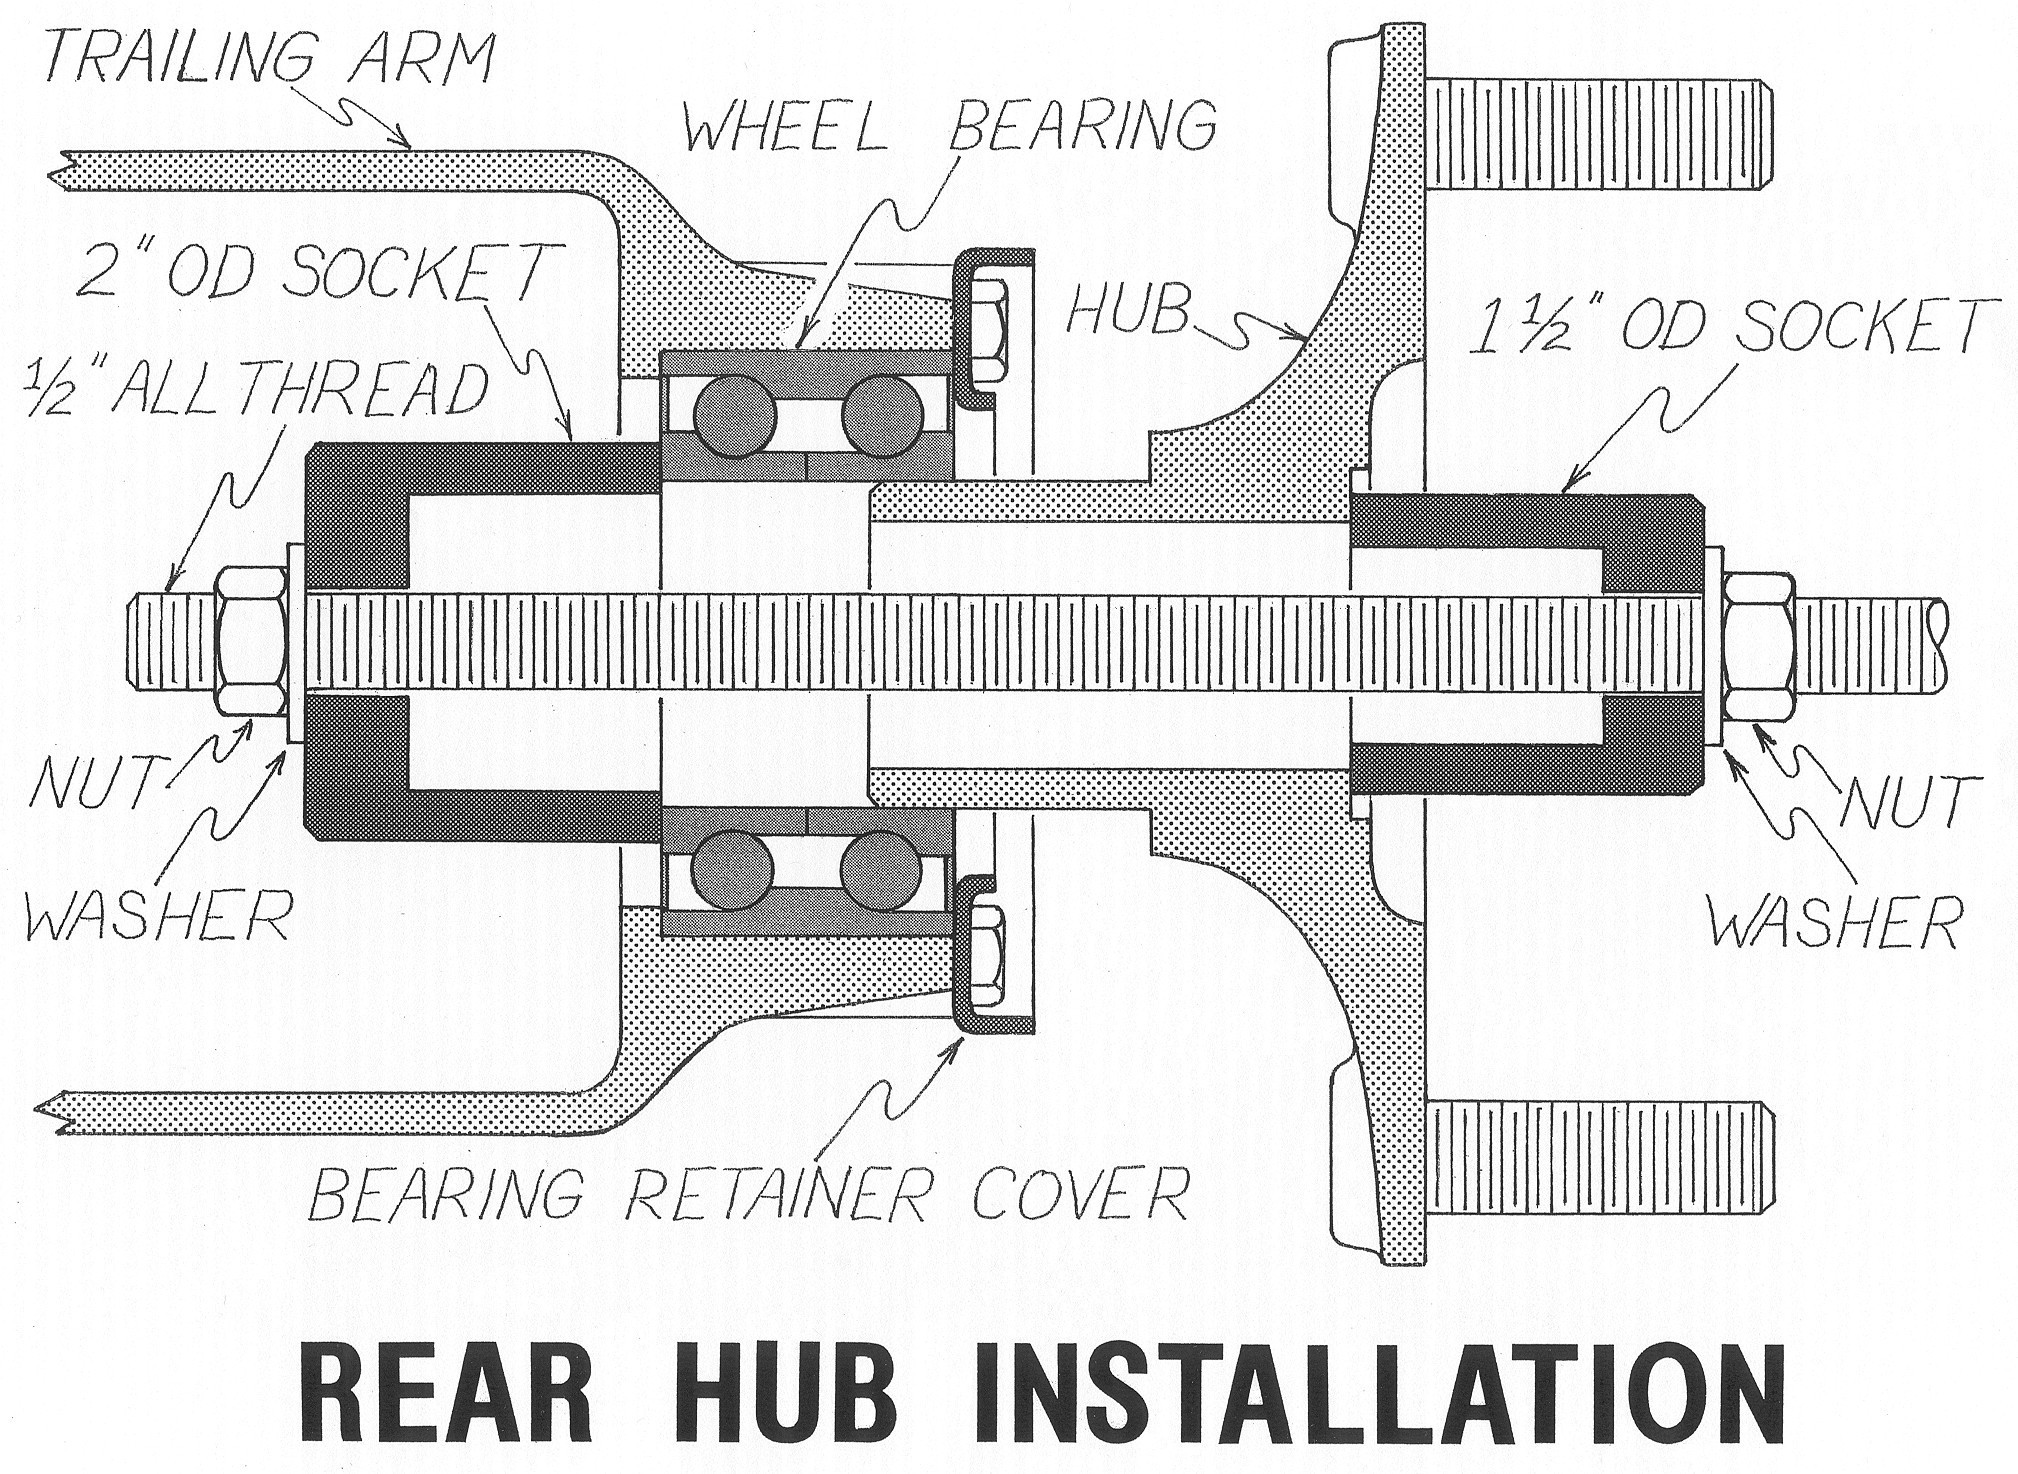 Car Bearings Diagram : Car wheel and axle diagram my wiring